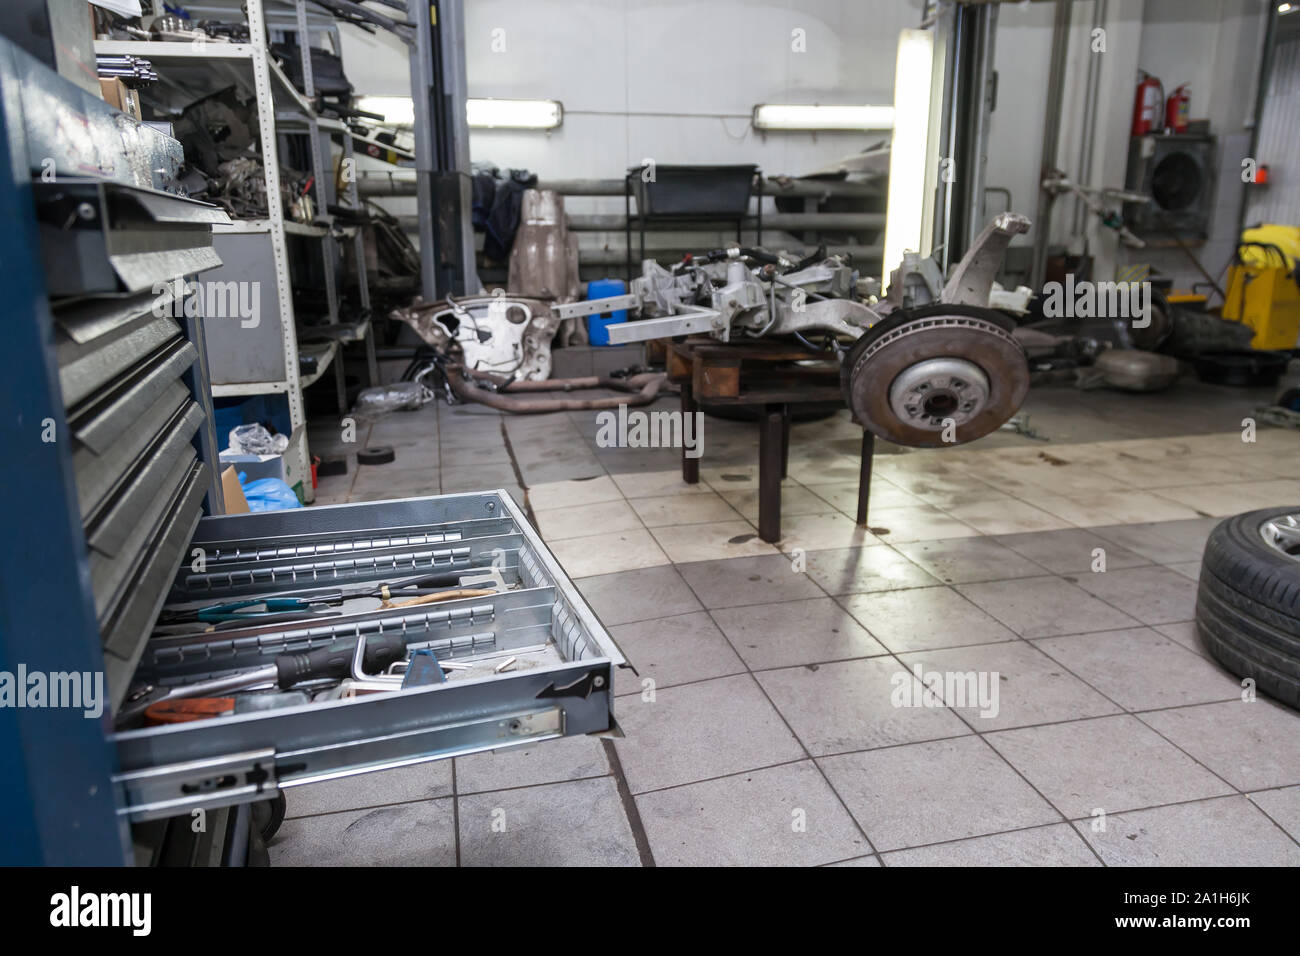 Open Drawer Rack With Tools For Repair And Maintenance Of Vehicles In A Car Repair Workshop Auto Service Industry Stock Photo Alamy